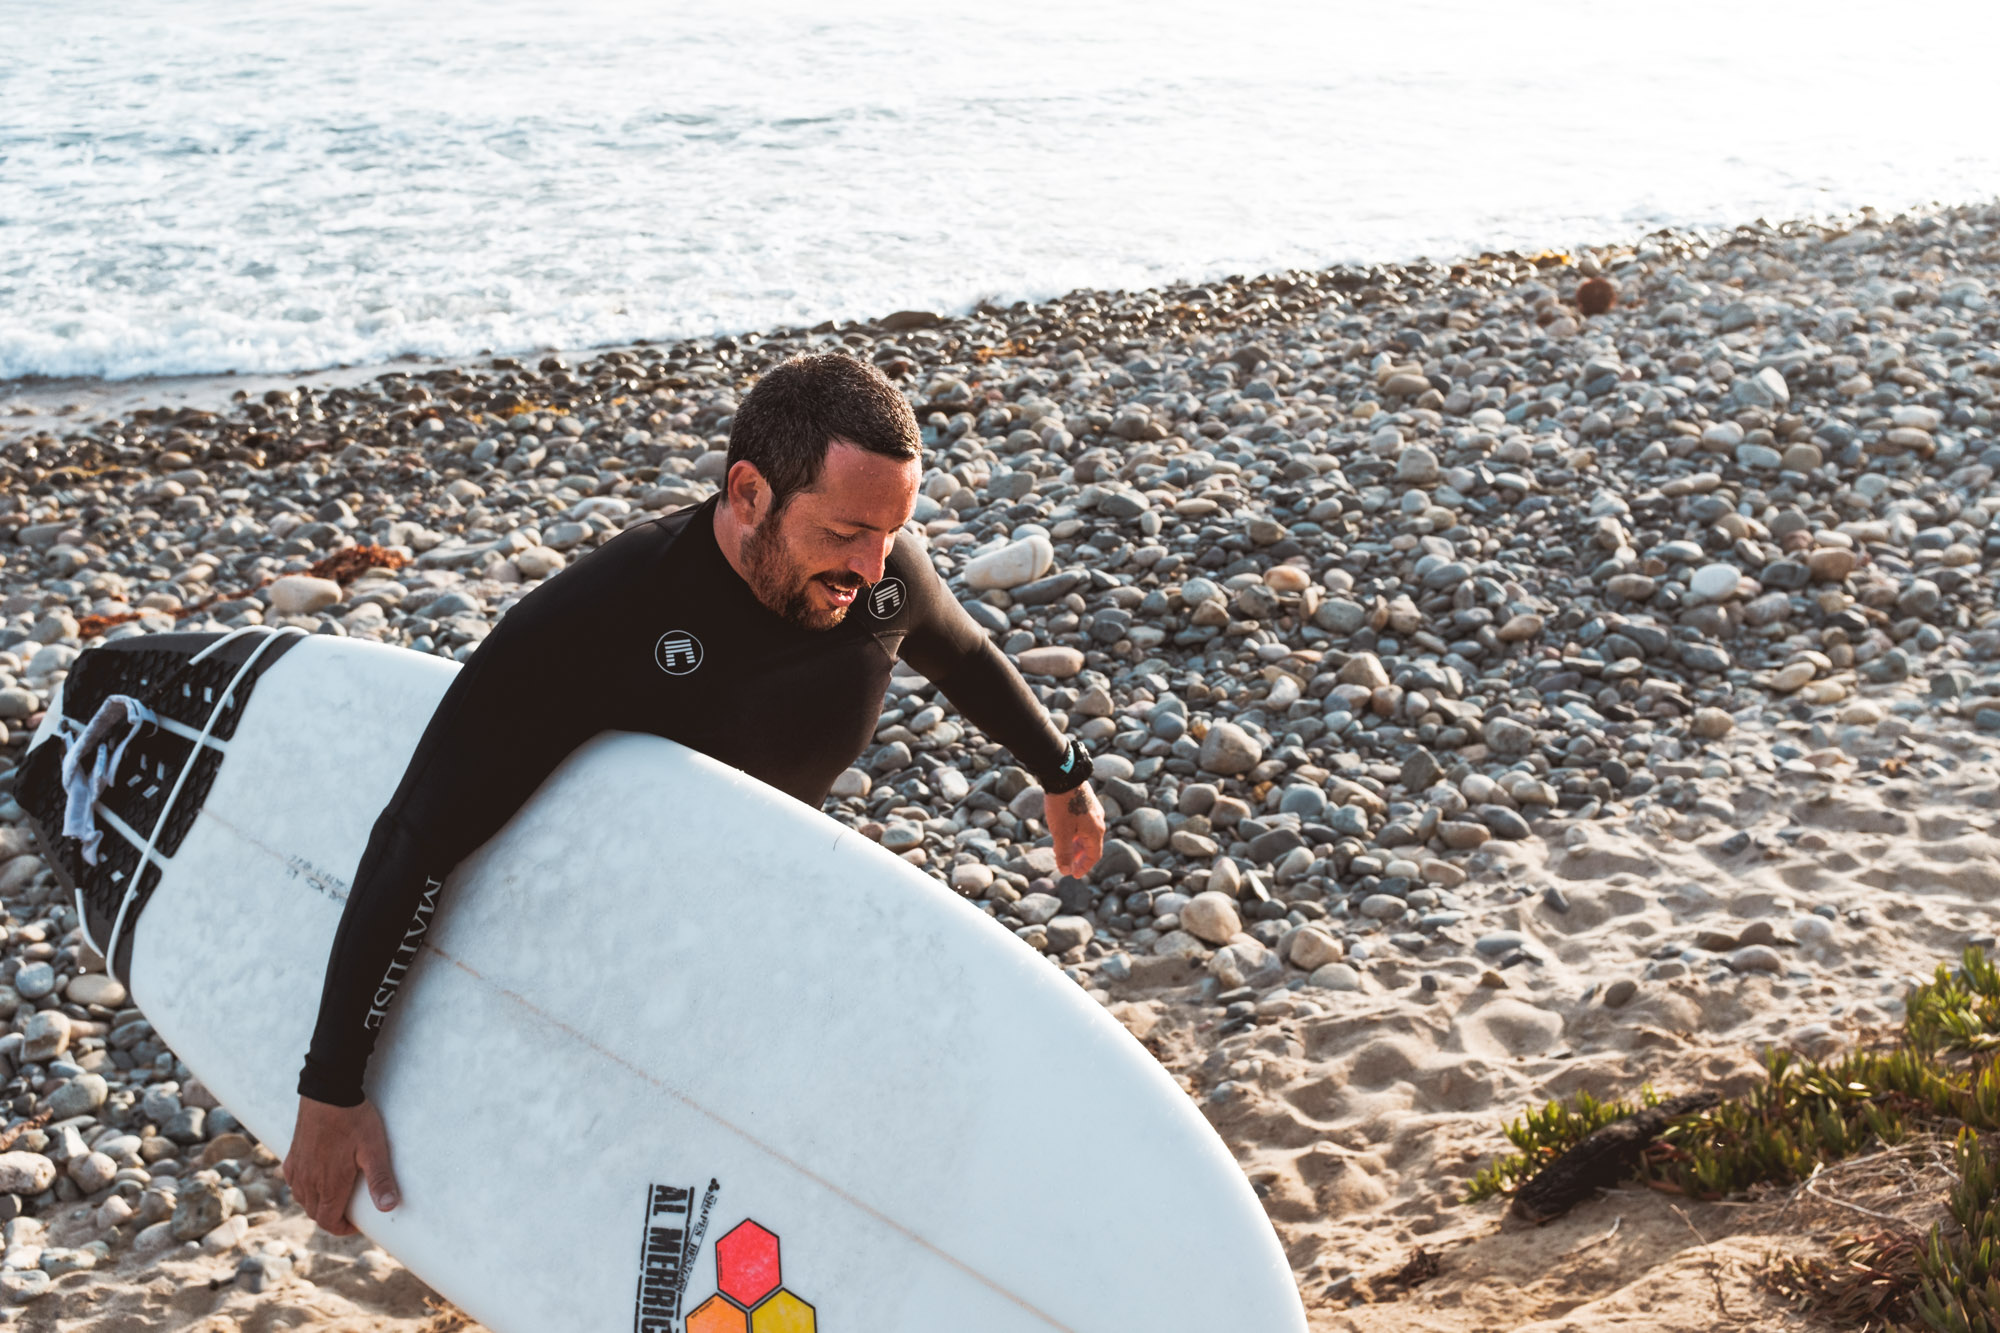 Juan-surfing-san-onofre